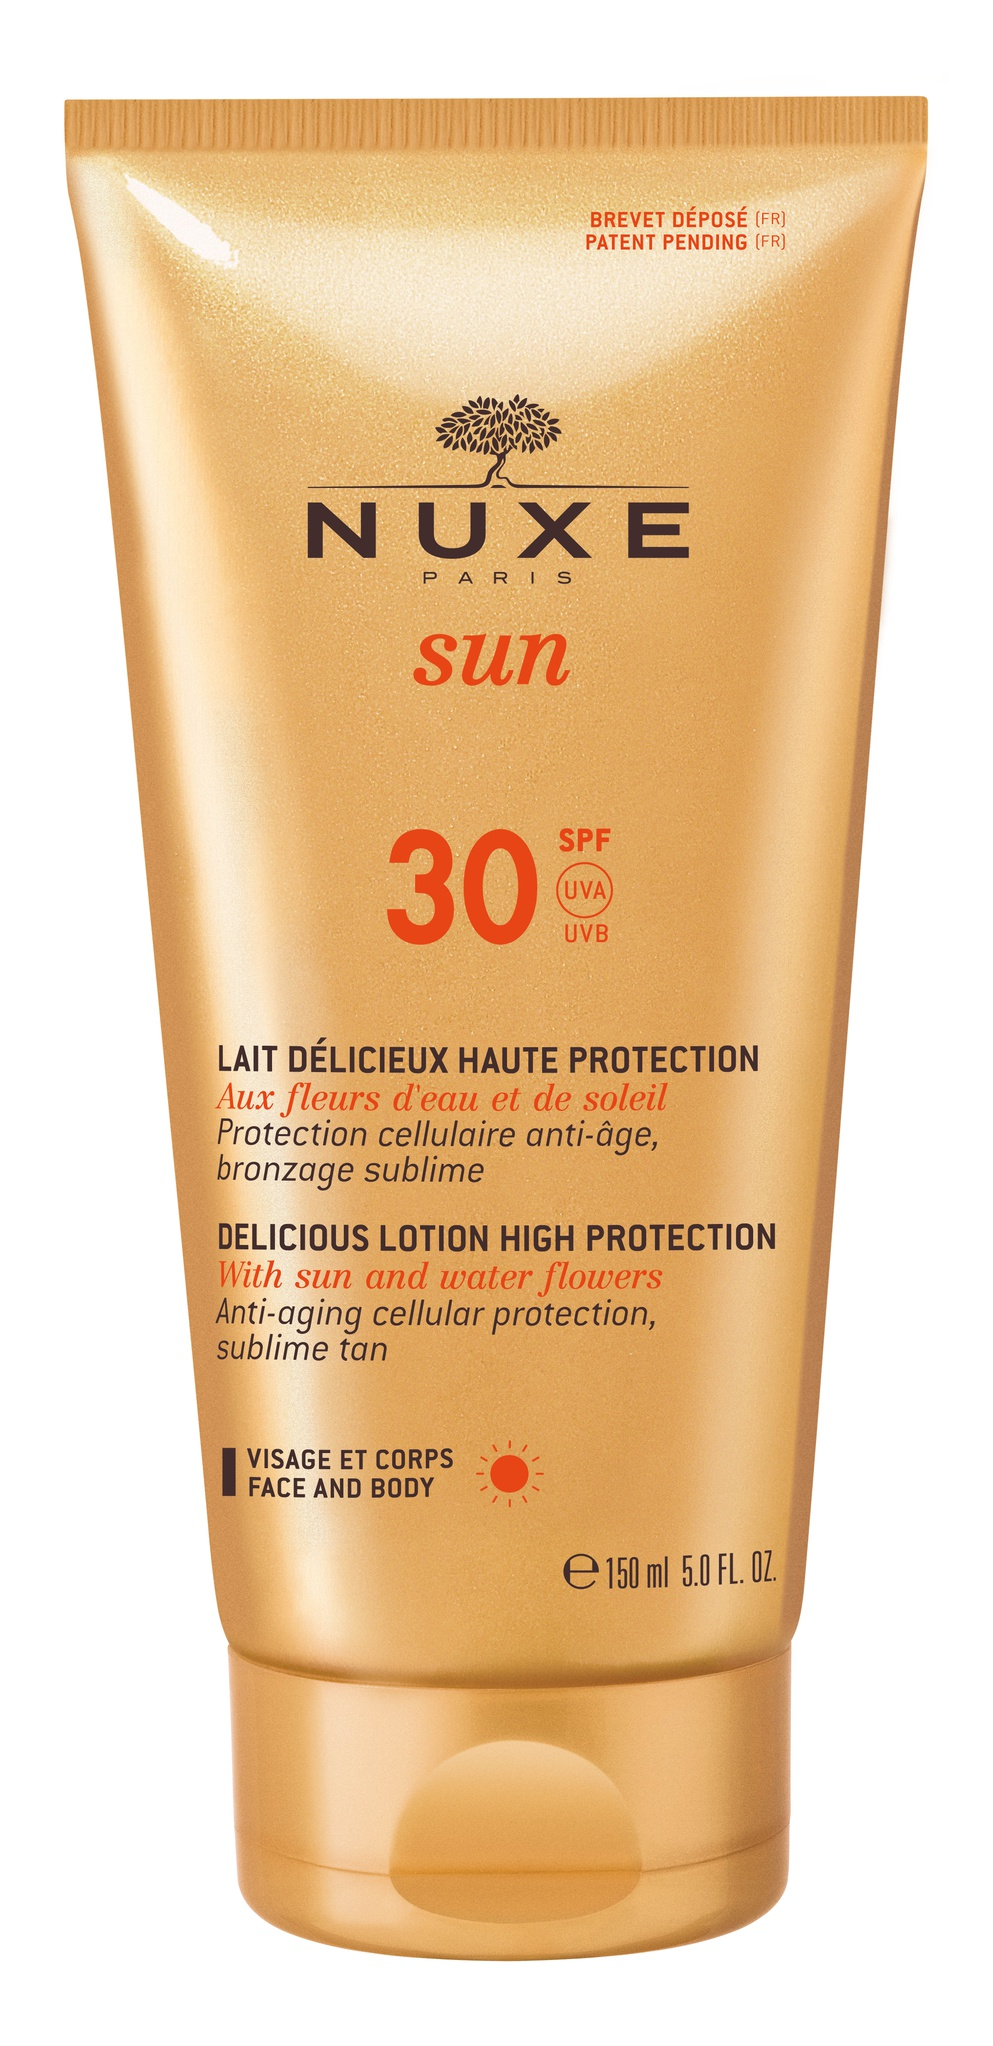 Nuxe Delicious Lotion High Protection SPF30